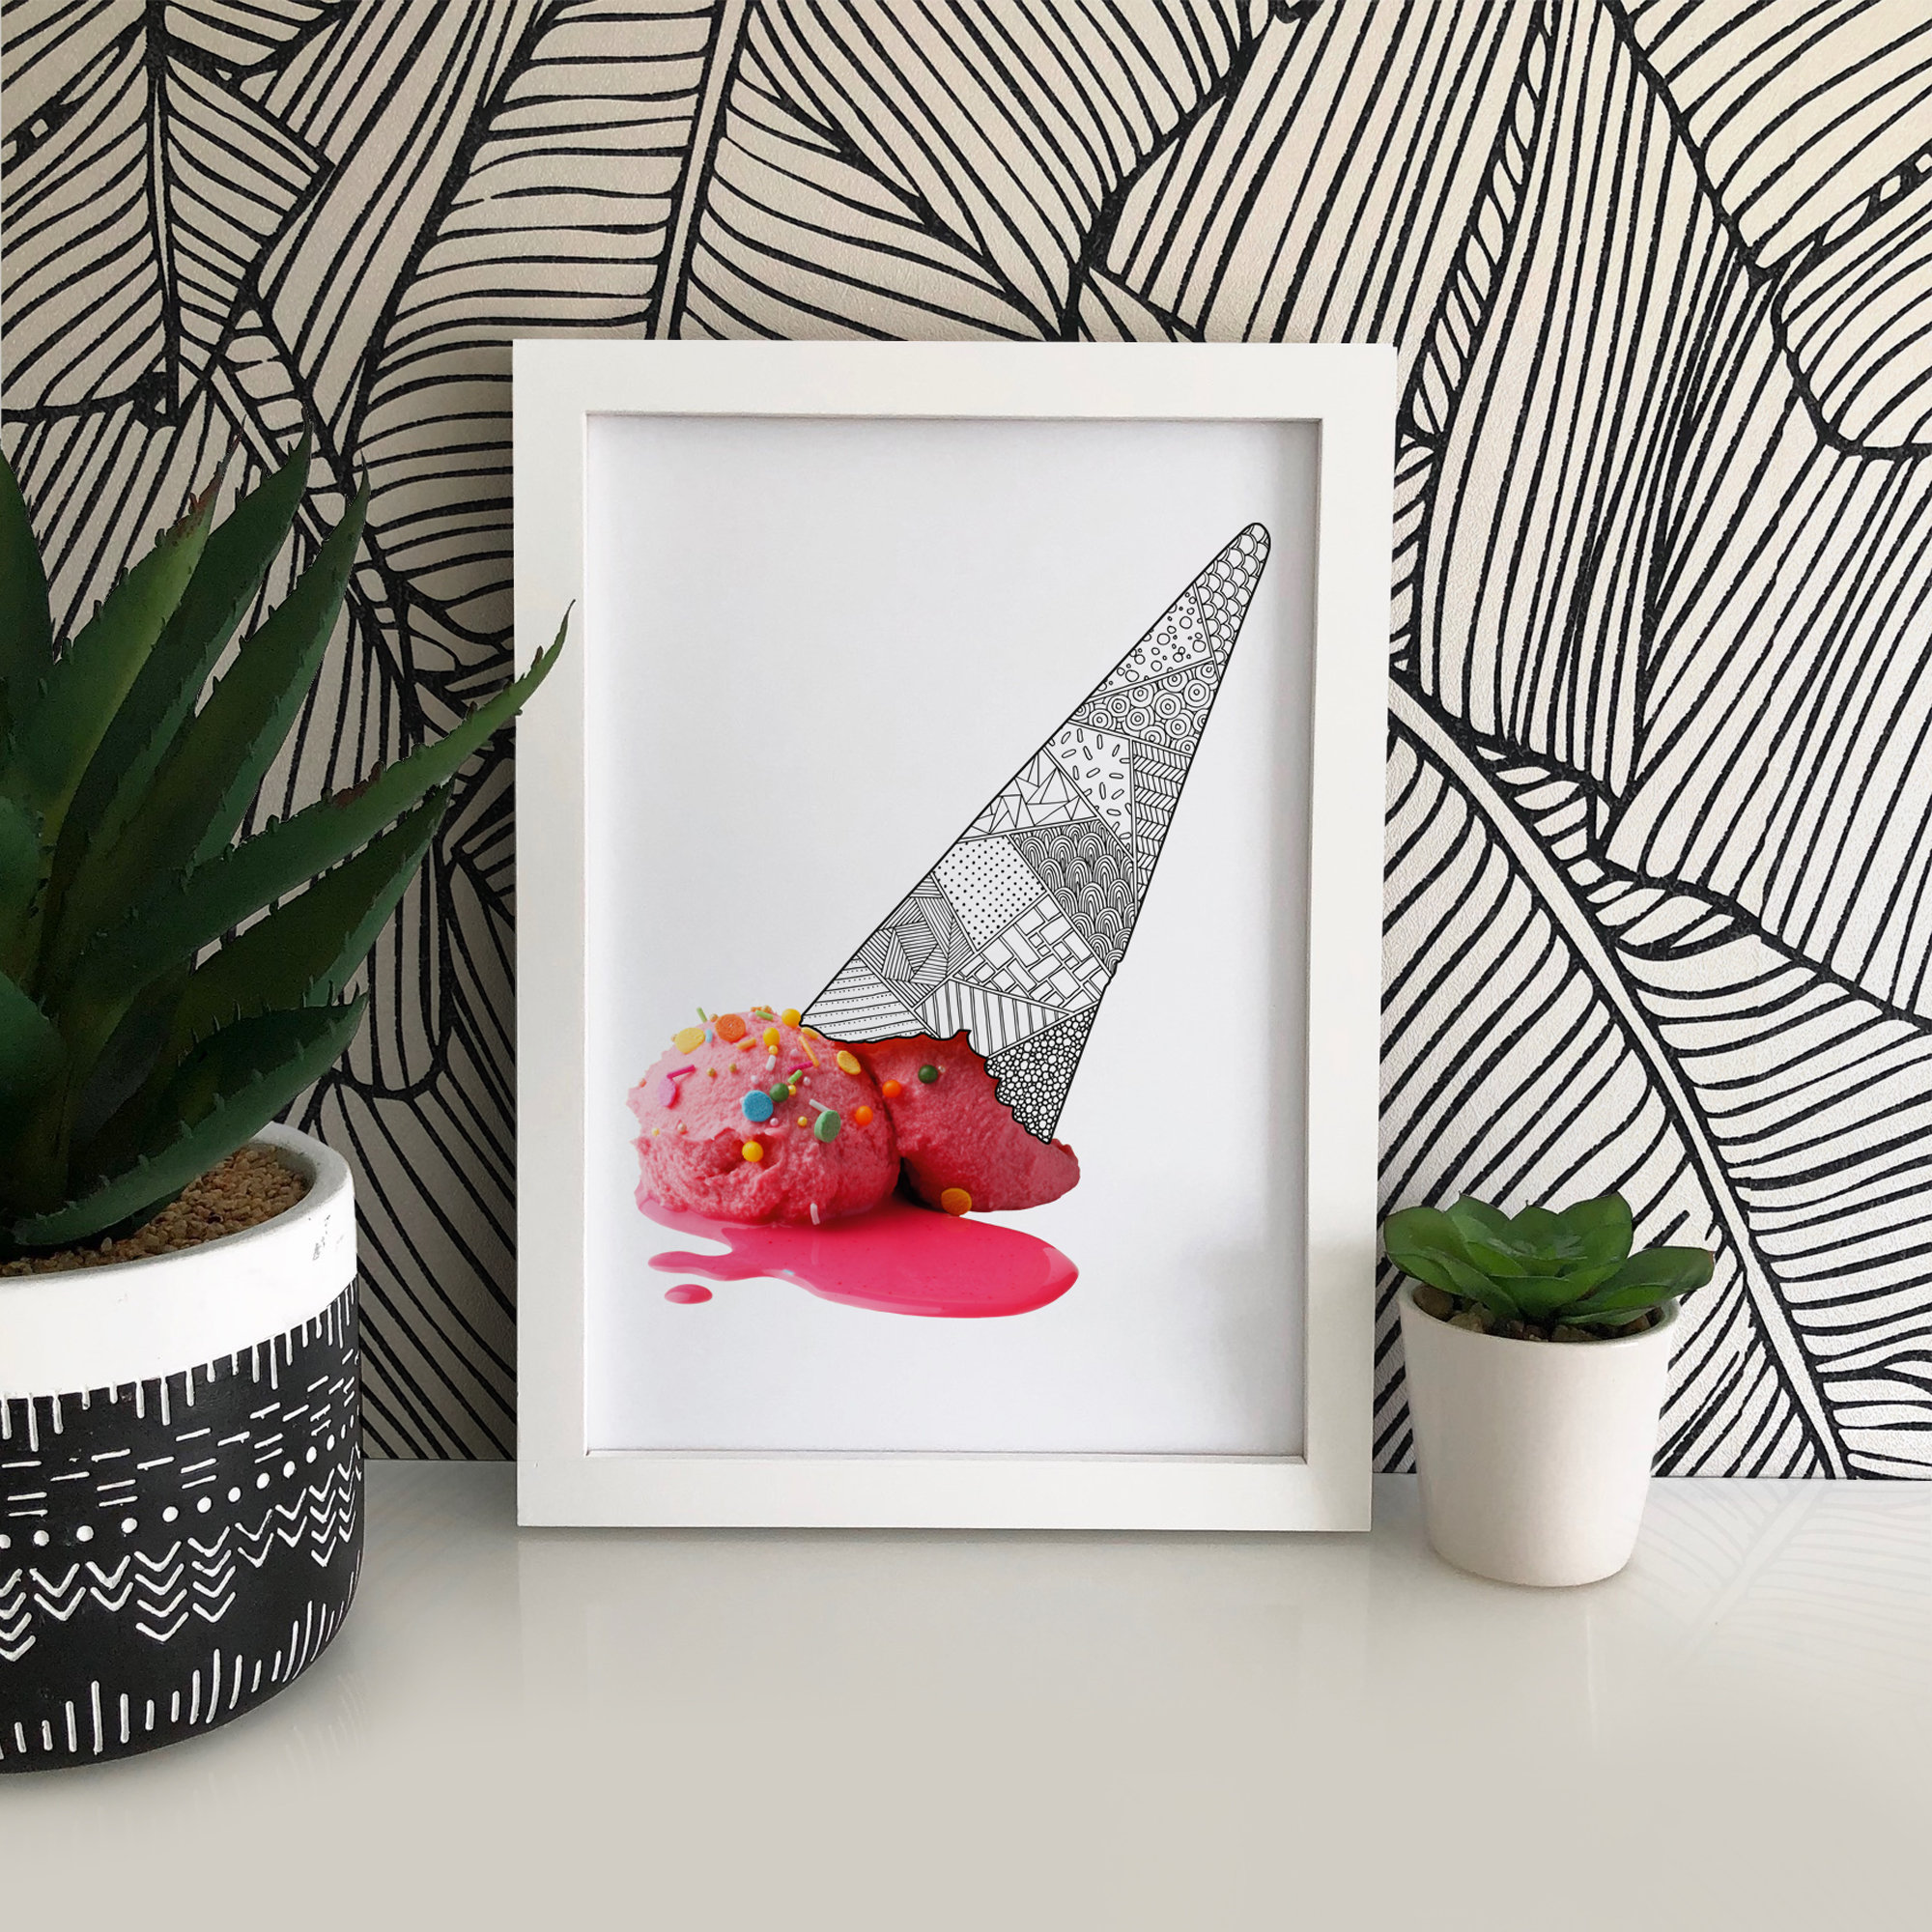 This gorgeous A4 art print features a vibrant pink 'Melted' ice-cream, zentangle inspired patterned cone and lots of sprinkles! It is printed onto 190gsm archival matte paper providing superb crispness of detail and vibrancy of colour.